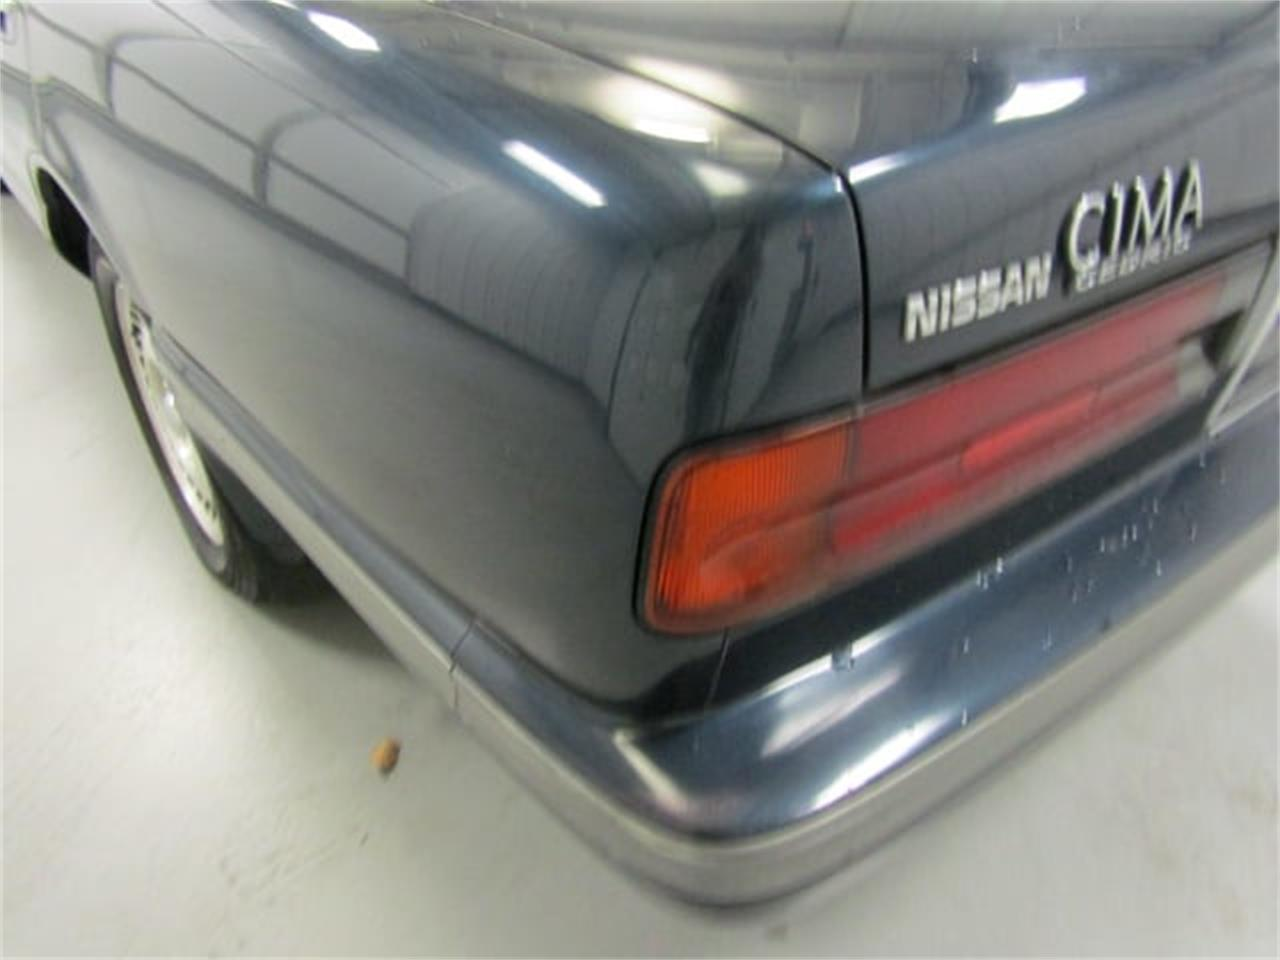 Large Picture of 1991 Nissan Cima located in Christiansburg Virginia - $5,959.00 Offered by Duncan Imports & Classic Cars - JZ2X